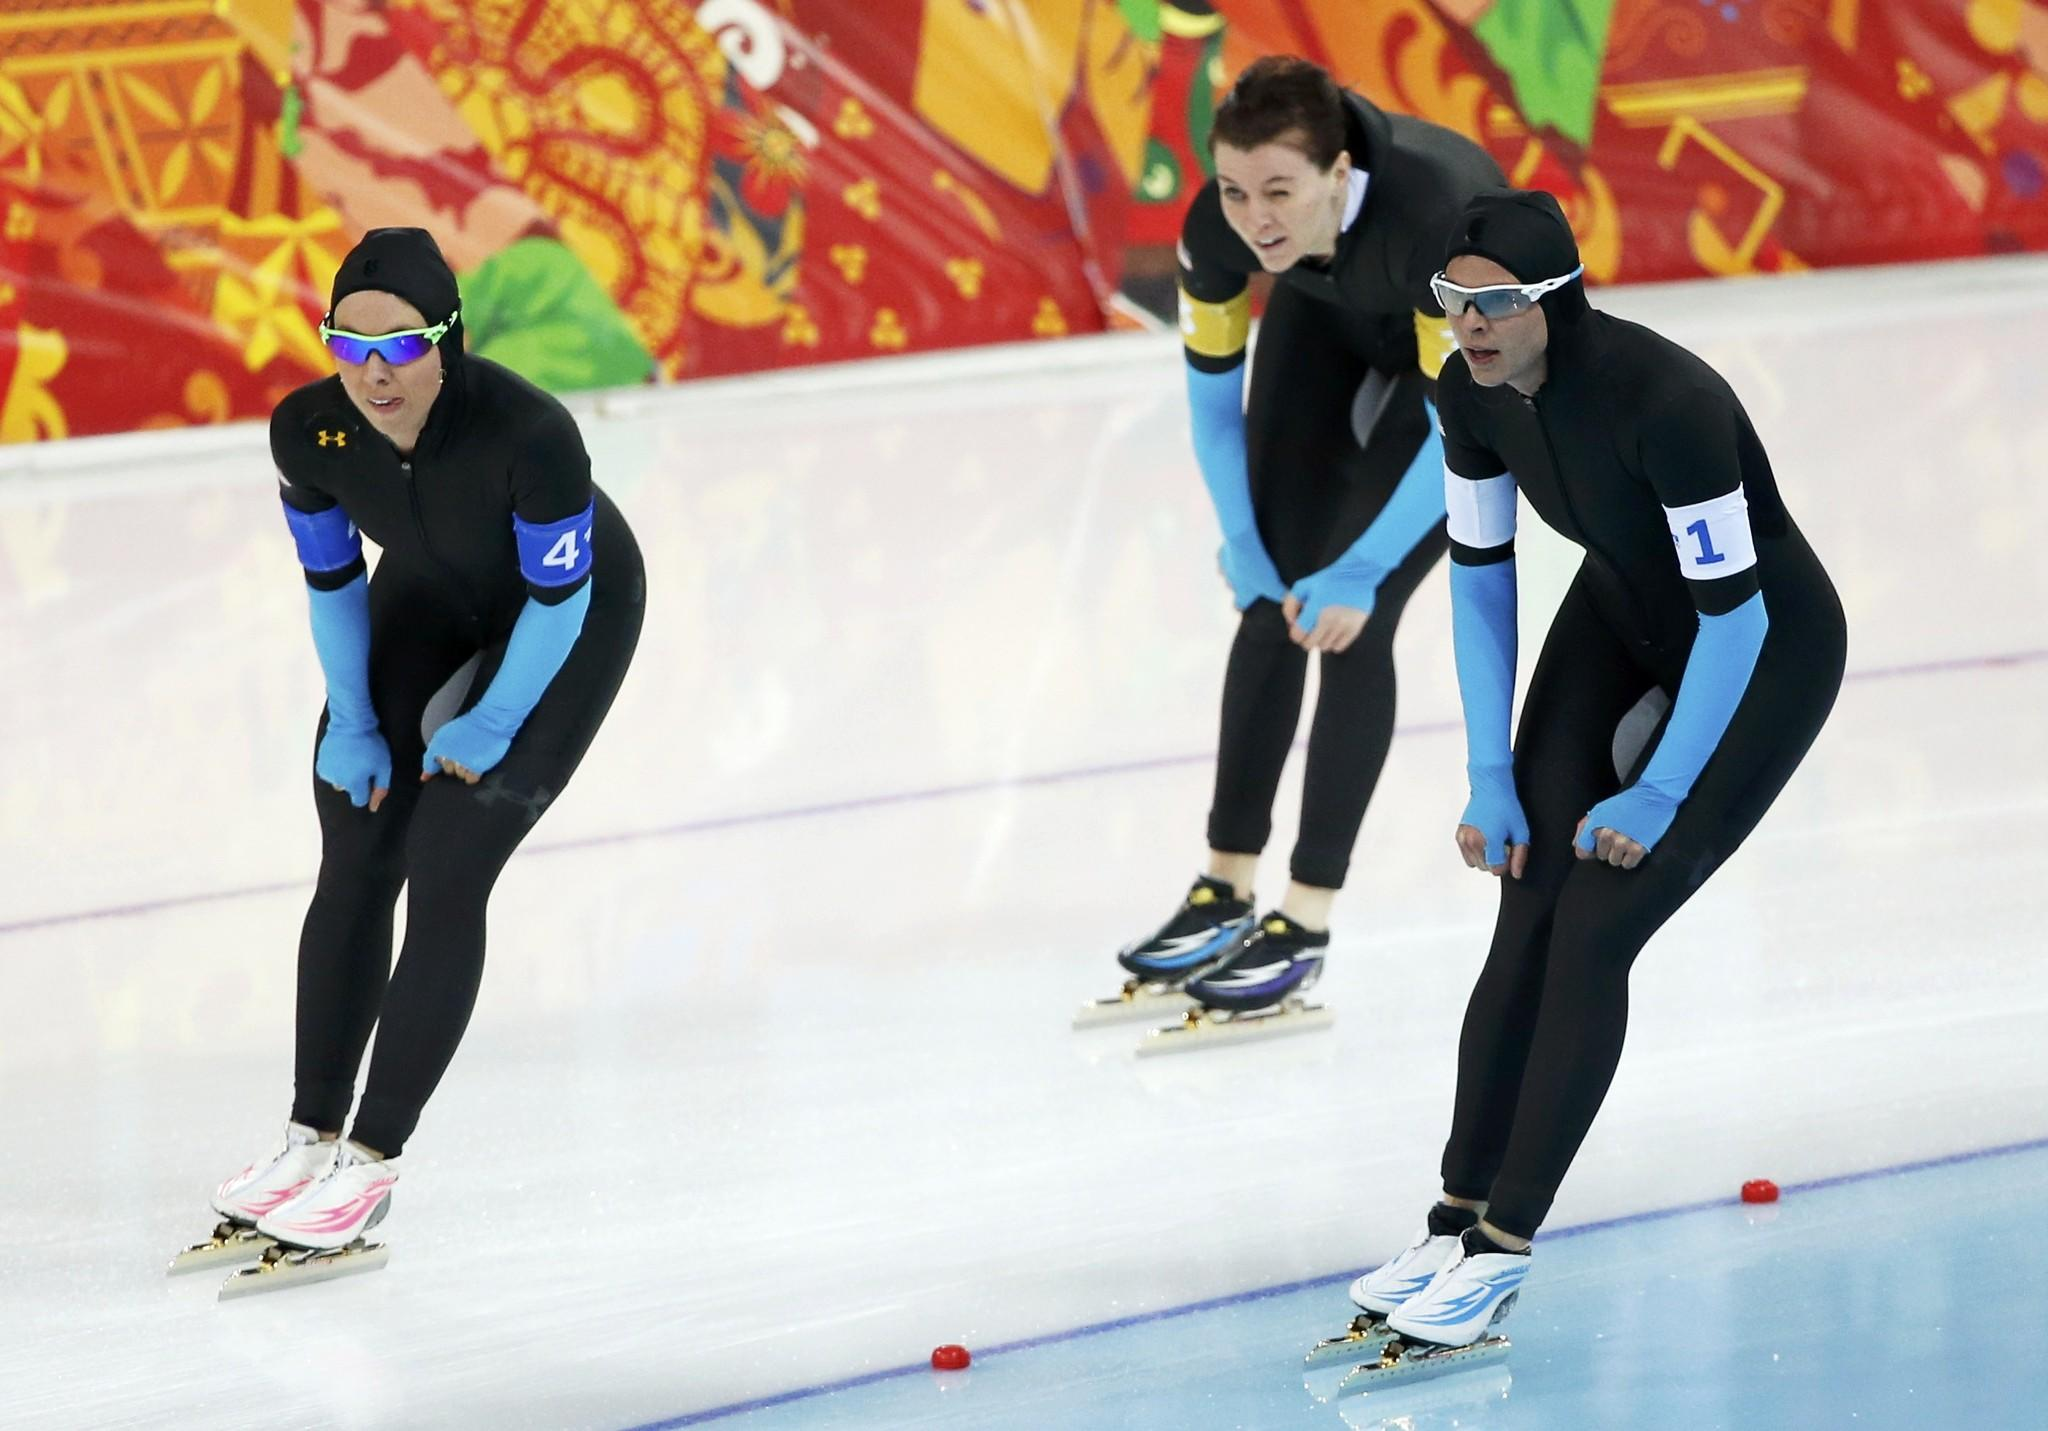 Jilleanne Rookard (L-R) of the U.S., Heather Richardson and Brittany Bowe react after the women's speed skating team pursuit finals event at the Adler Arena in the Sochi 2014 Winter Olympic Games February 22, 2014.